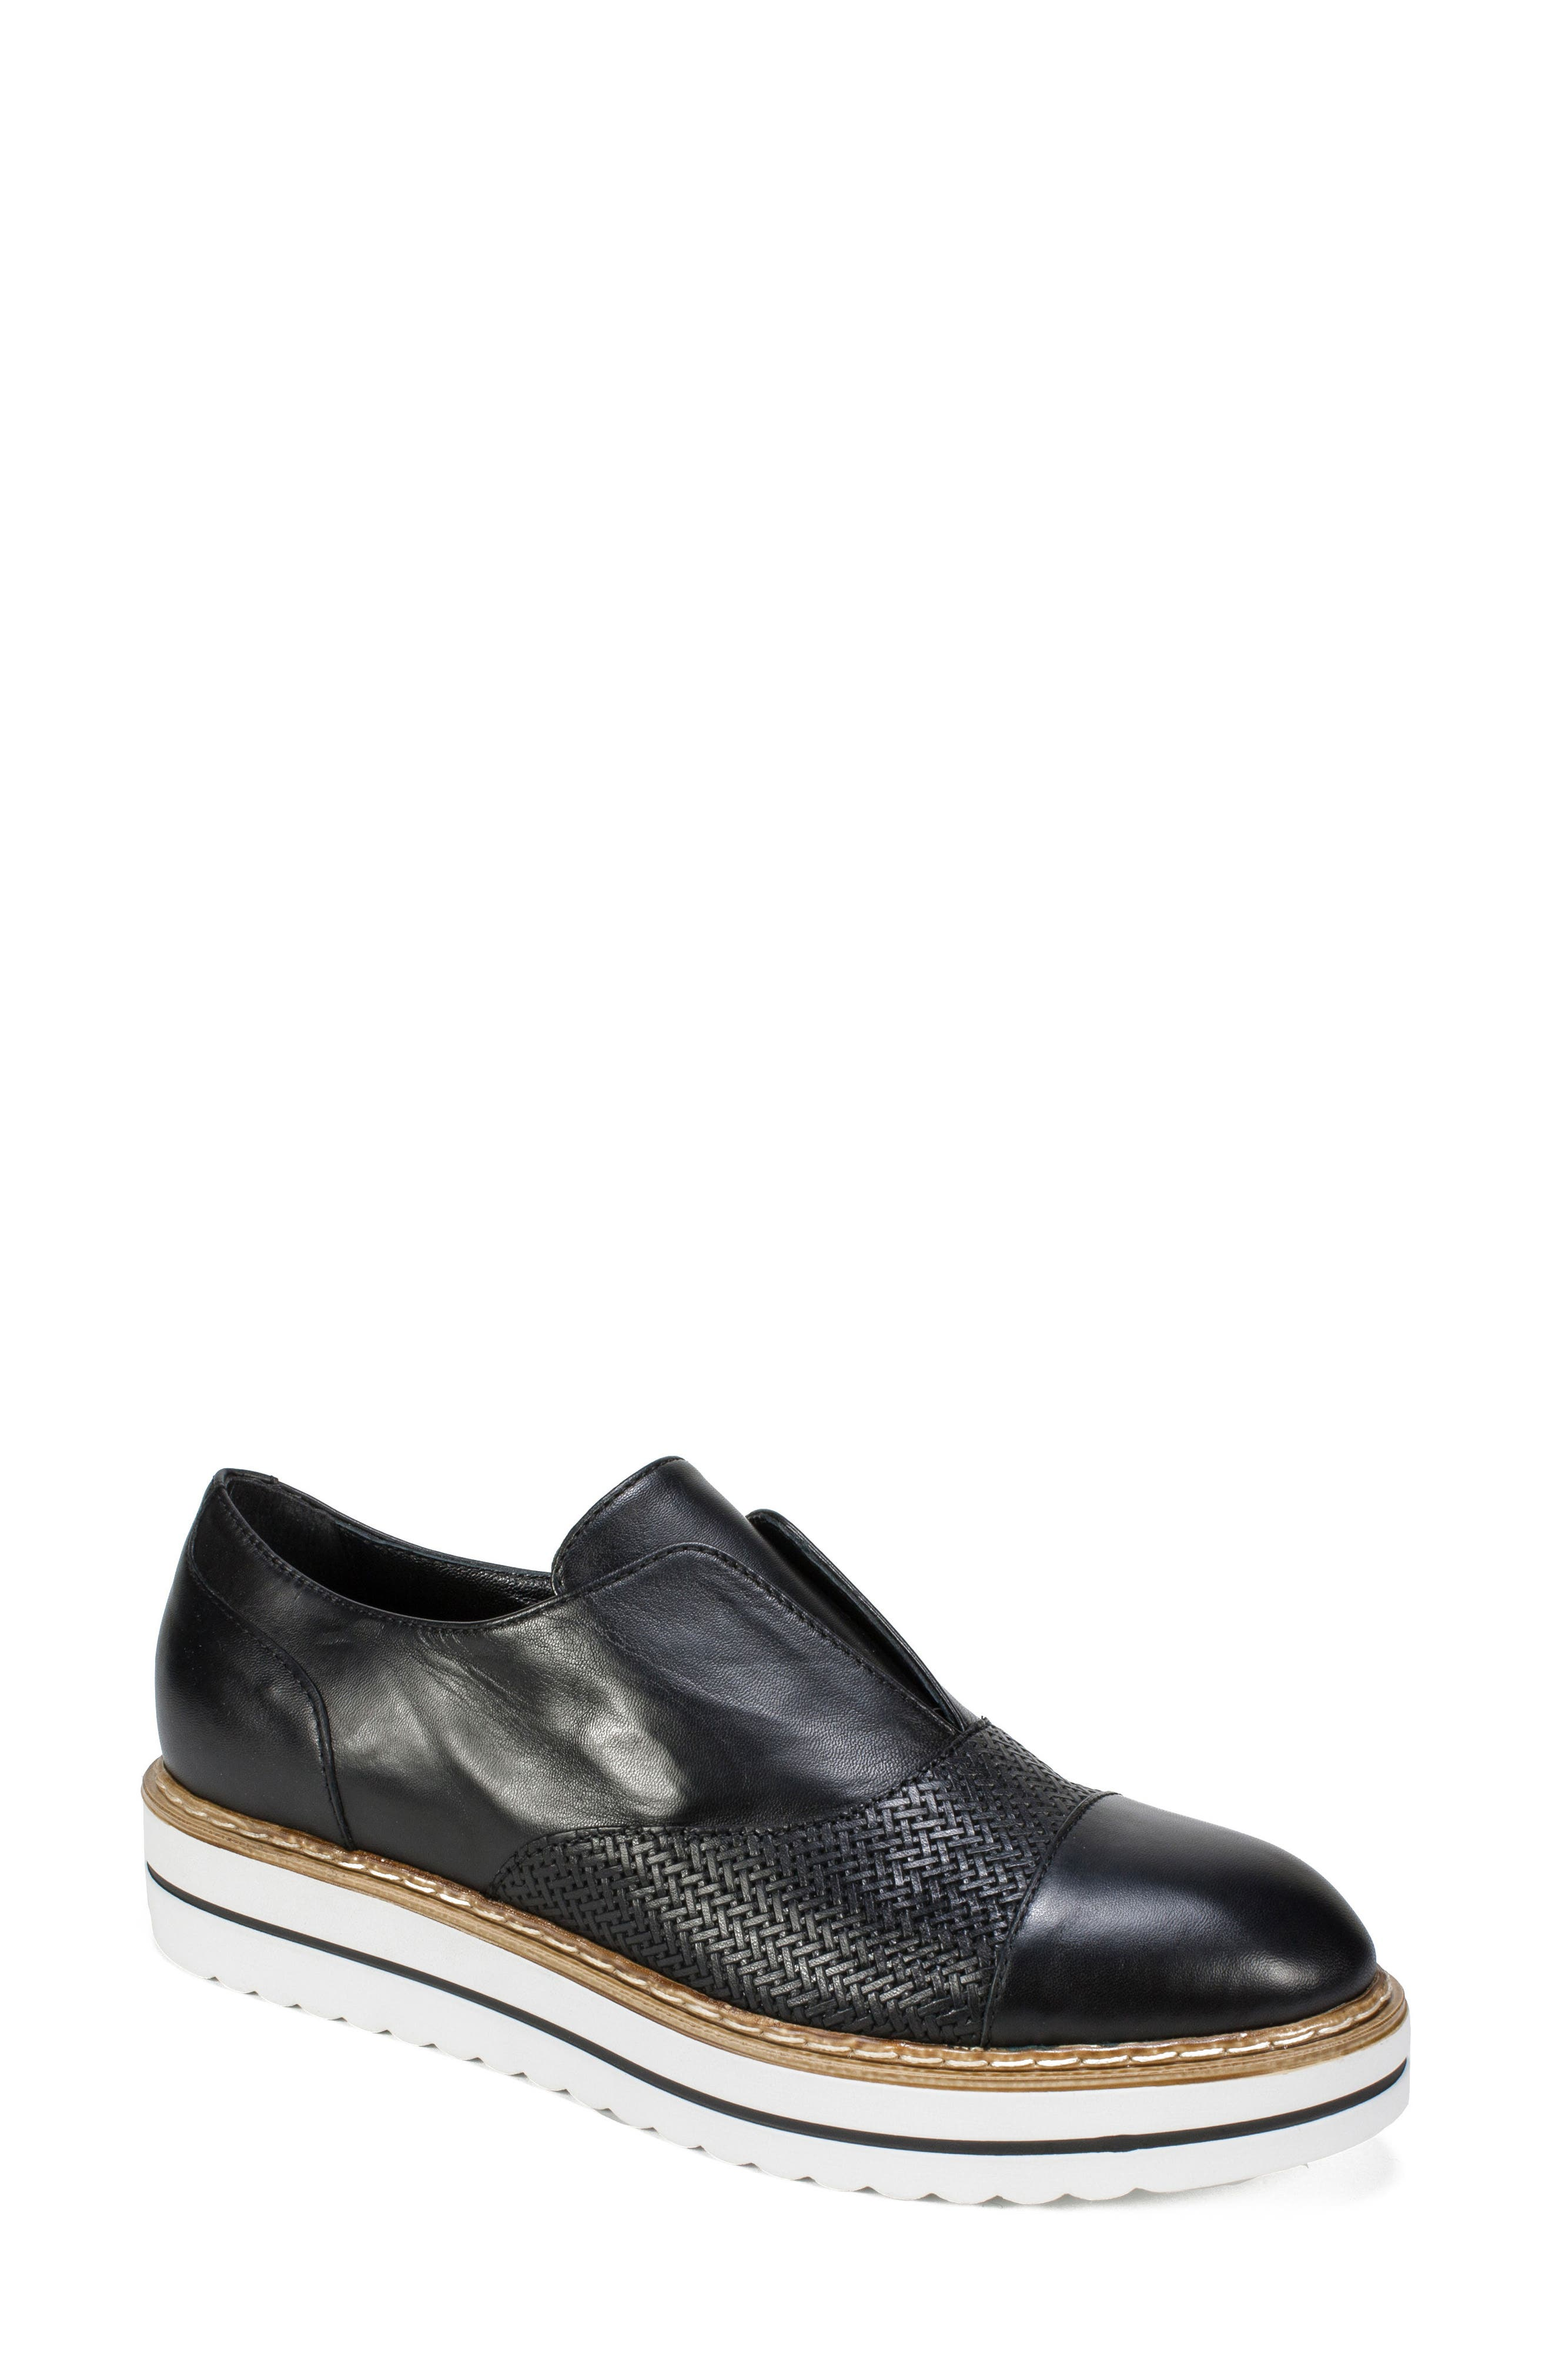 Bliss Loafer,                         Main,                         color, 001